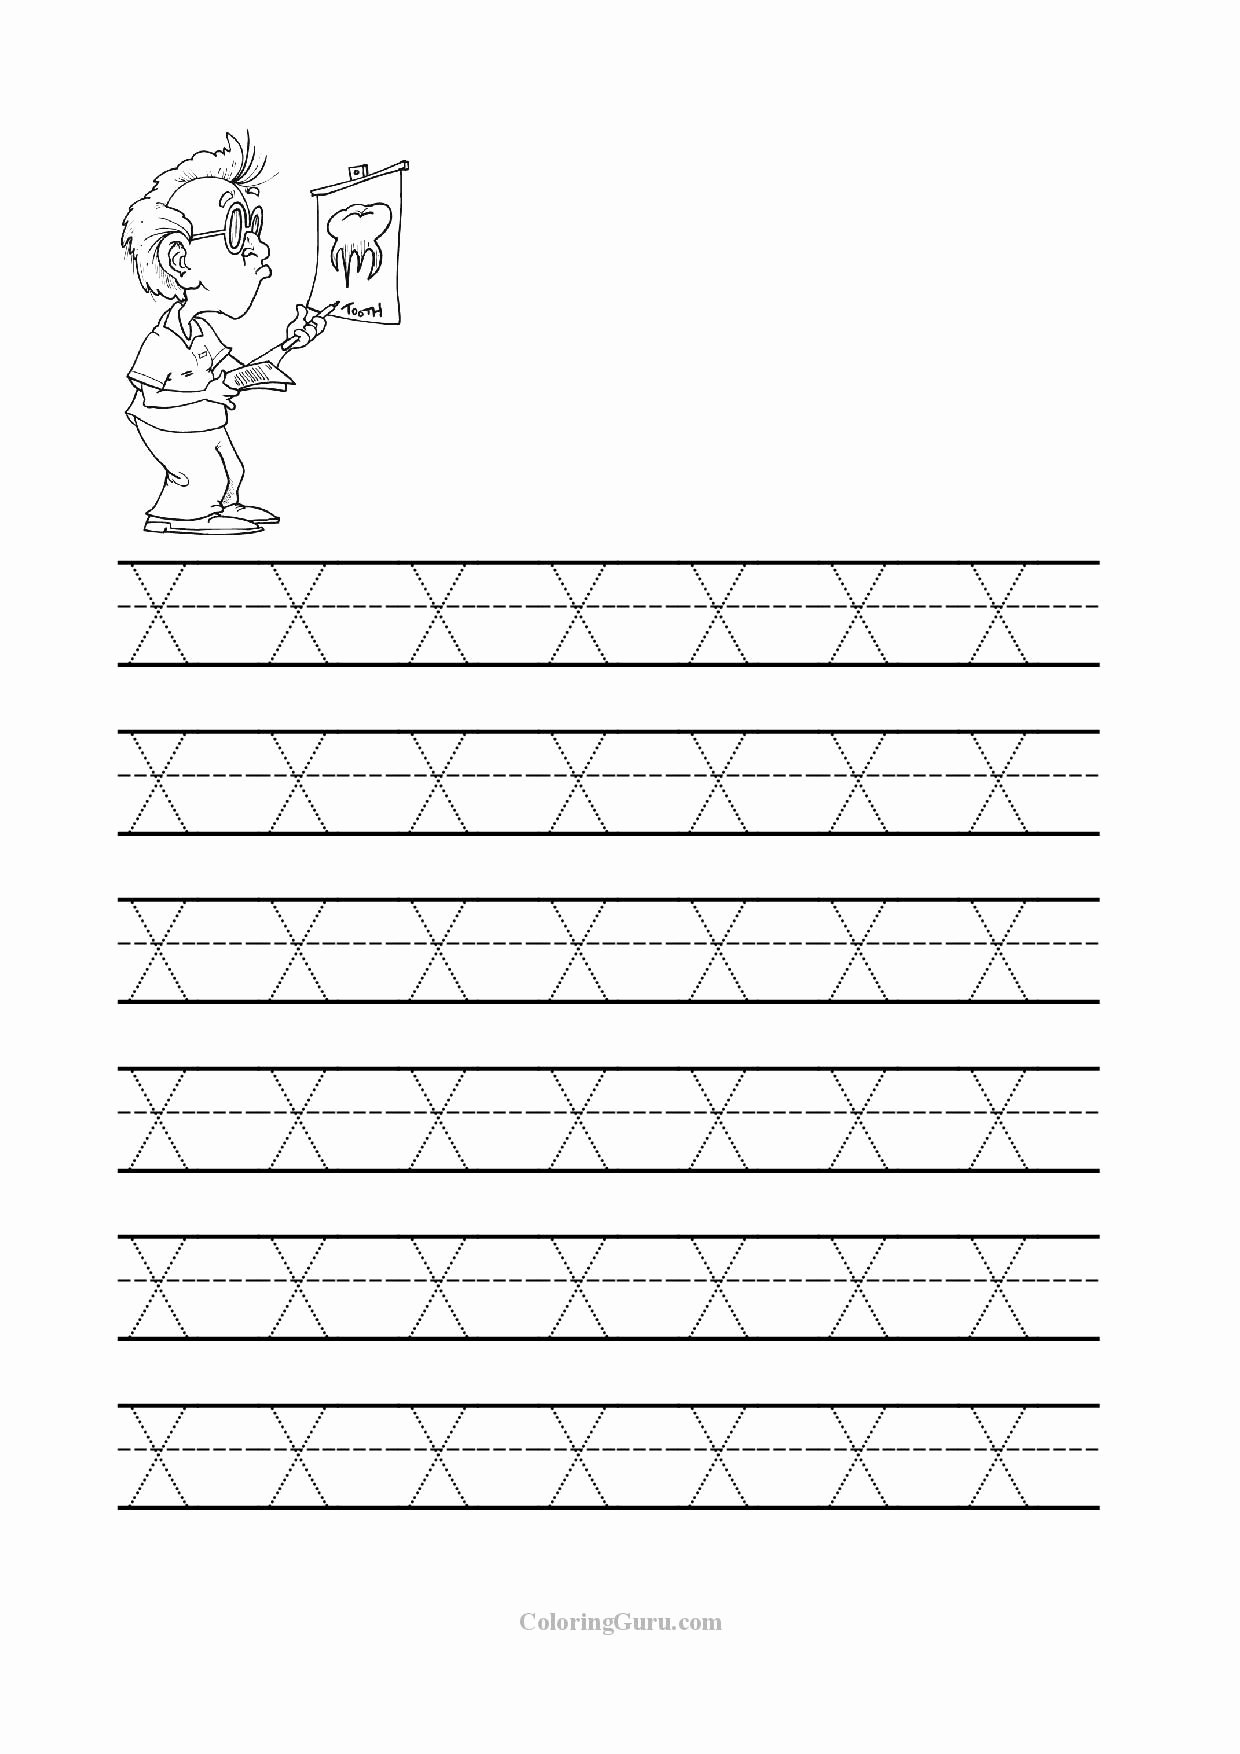 Letter X Worksheets for Preschoolers Kids Free Printable Tracing Letter X Worksheets for Preschool